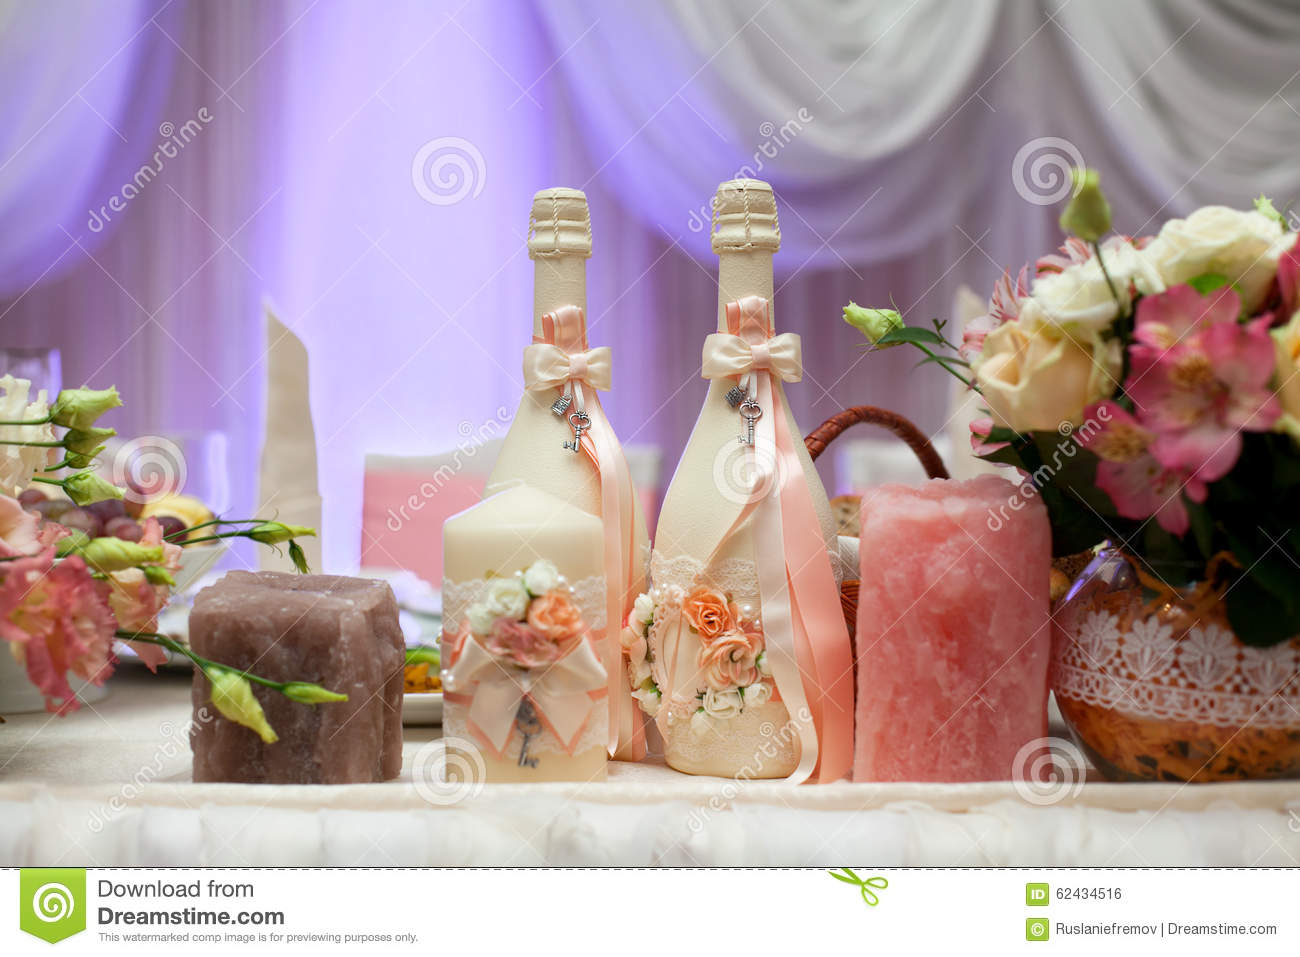 Champagne Bottle Decoration Decorated Champagne Bottles Candles And Flowers On Wedding Table